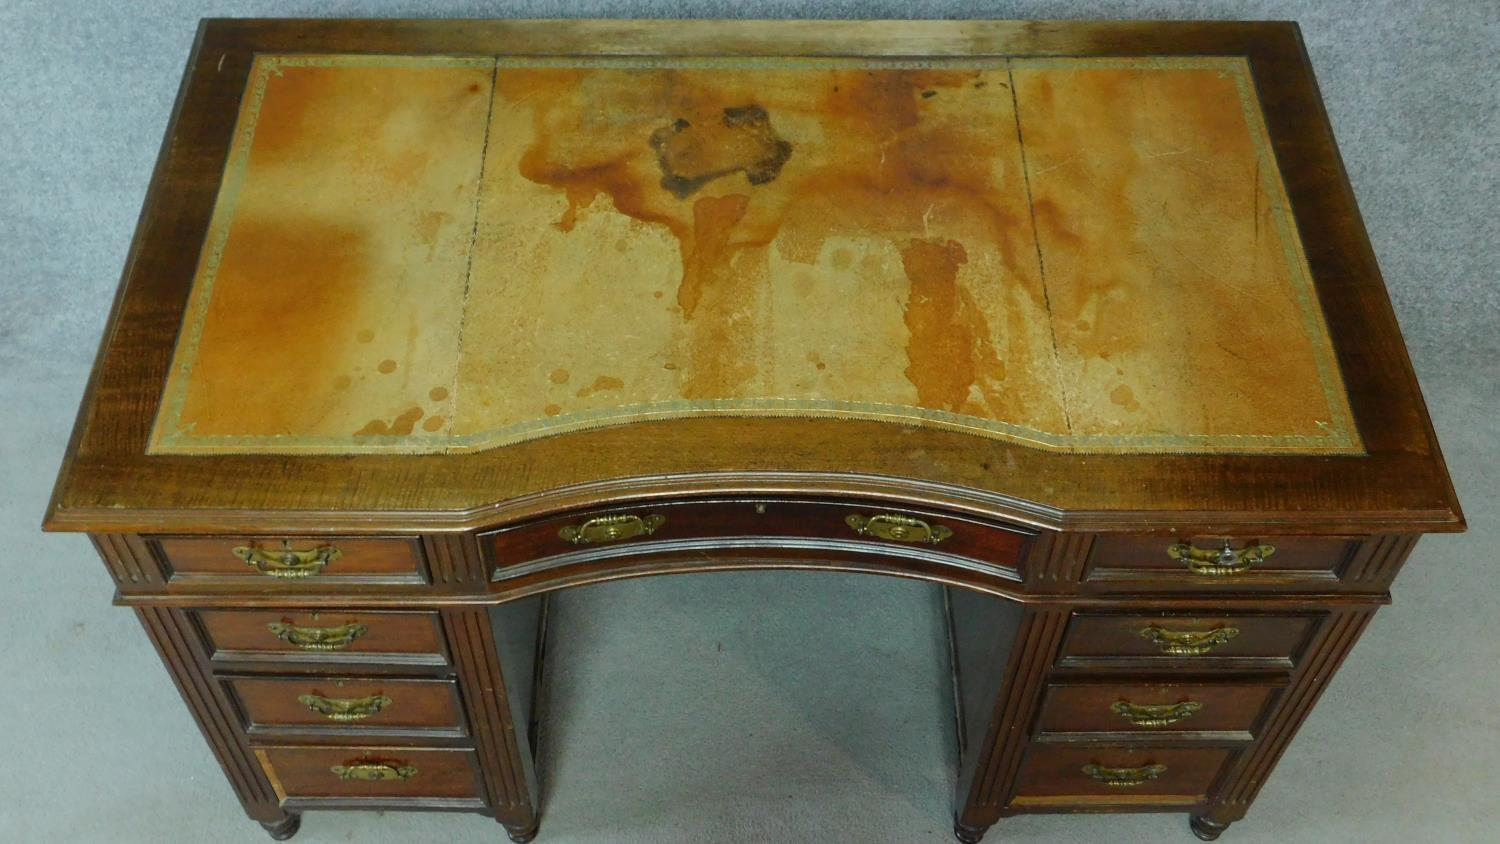 A late 19th century mahogany pedestal desk with leather inset top above an arrangement of nine - Image 4 of 7